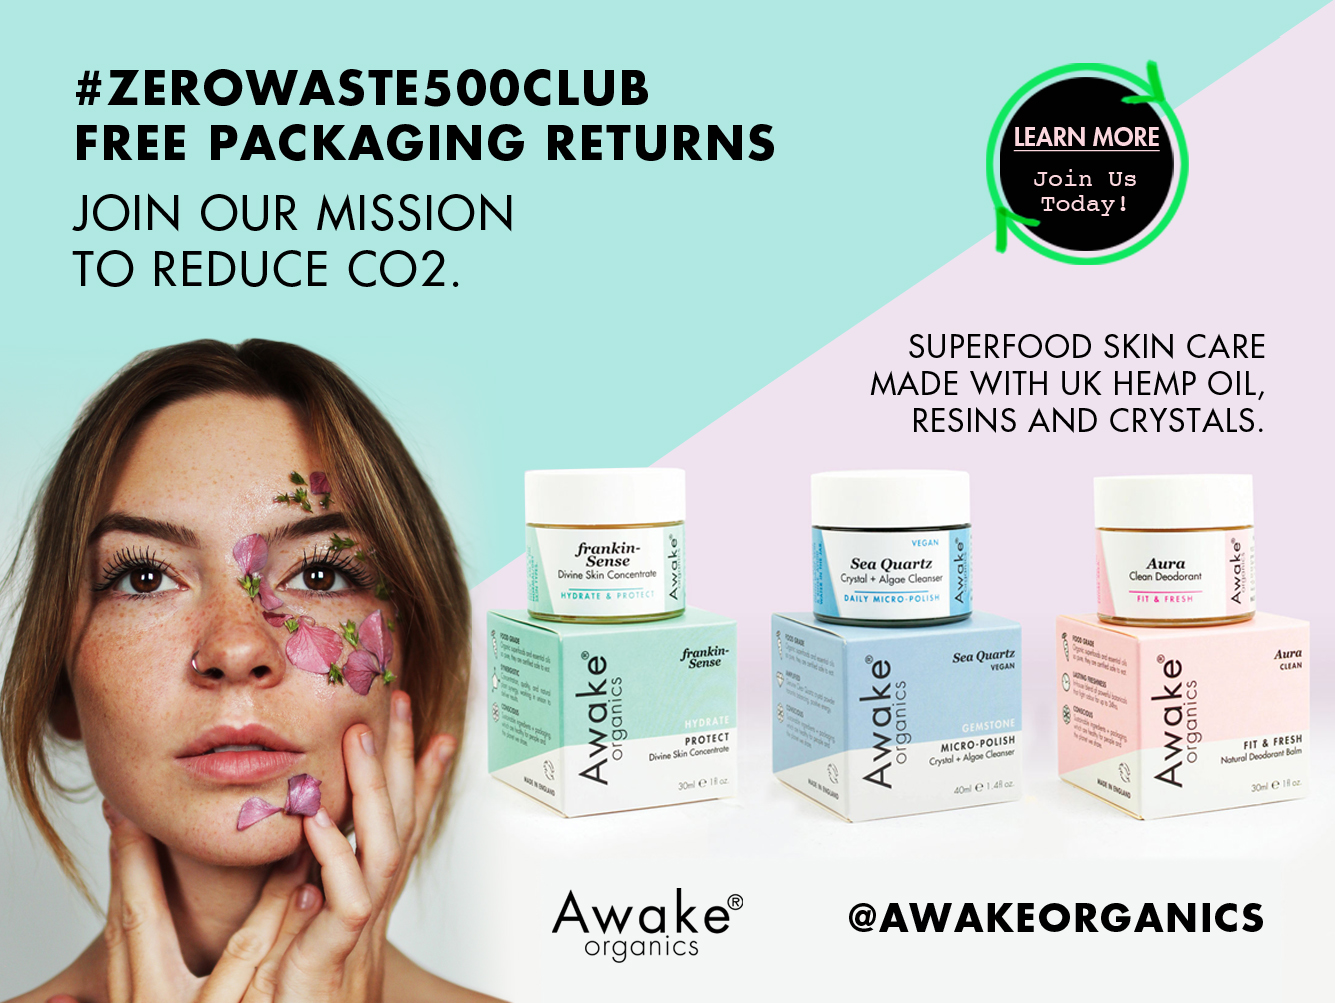 zero waste packaging returns | Awake Organics | #zerowaste500club